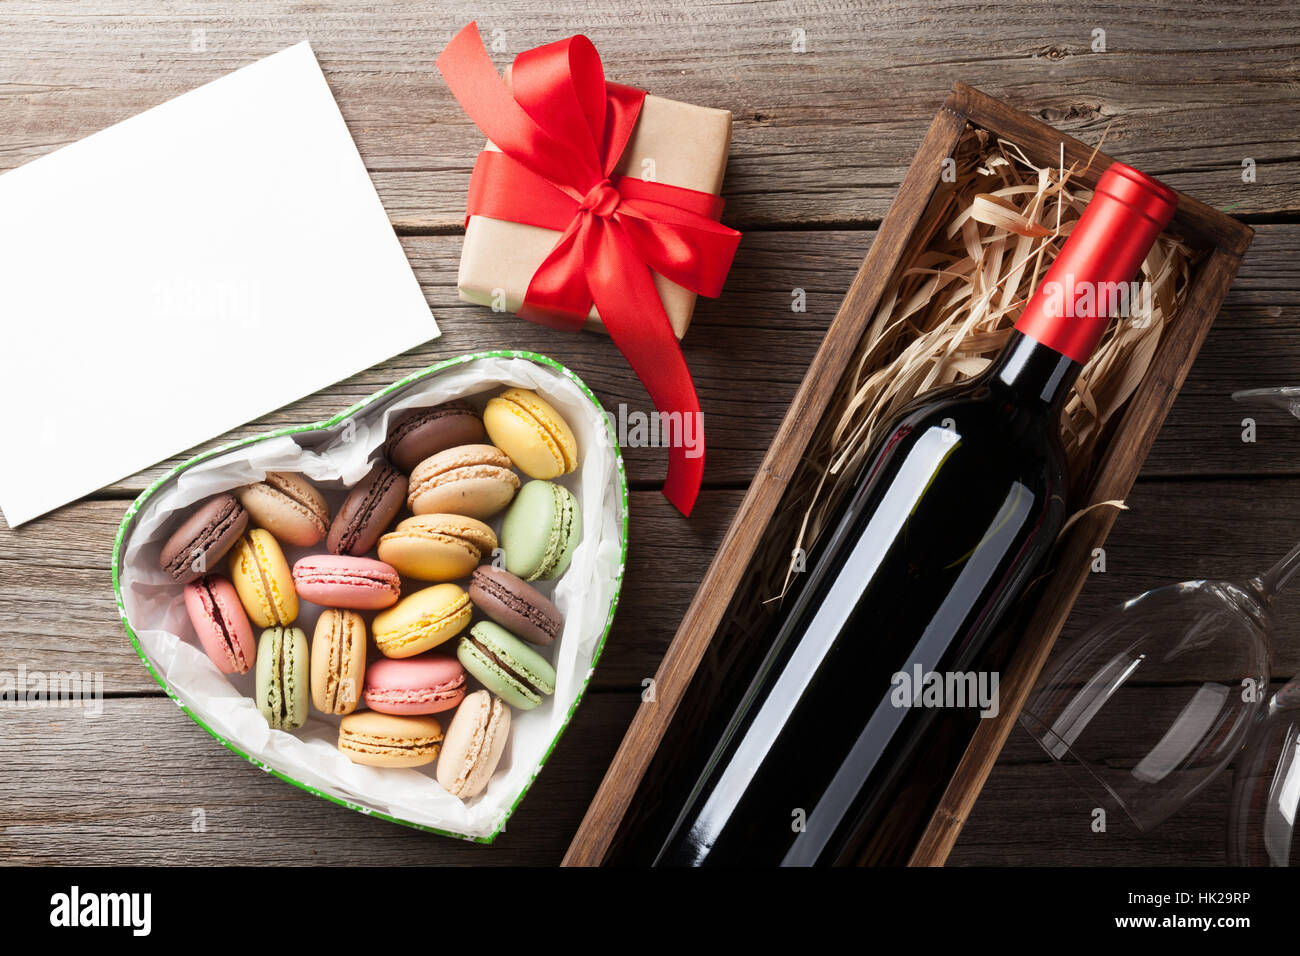 Valentines day greeting card. Red wine, macaroons gift box and glasses on wooden table. Top view with space for - Stock Image